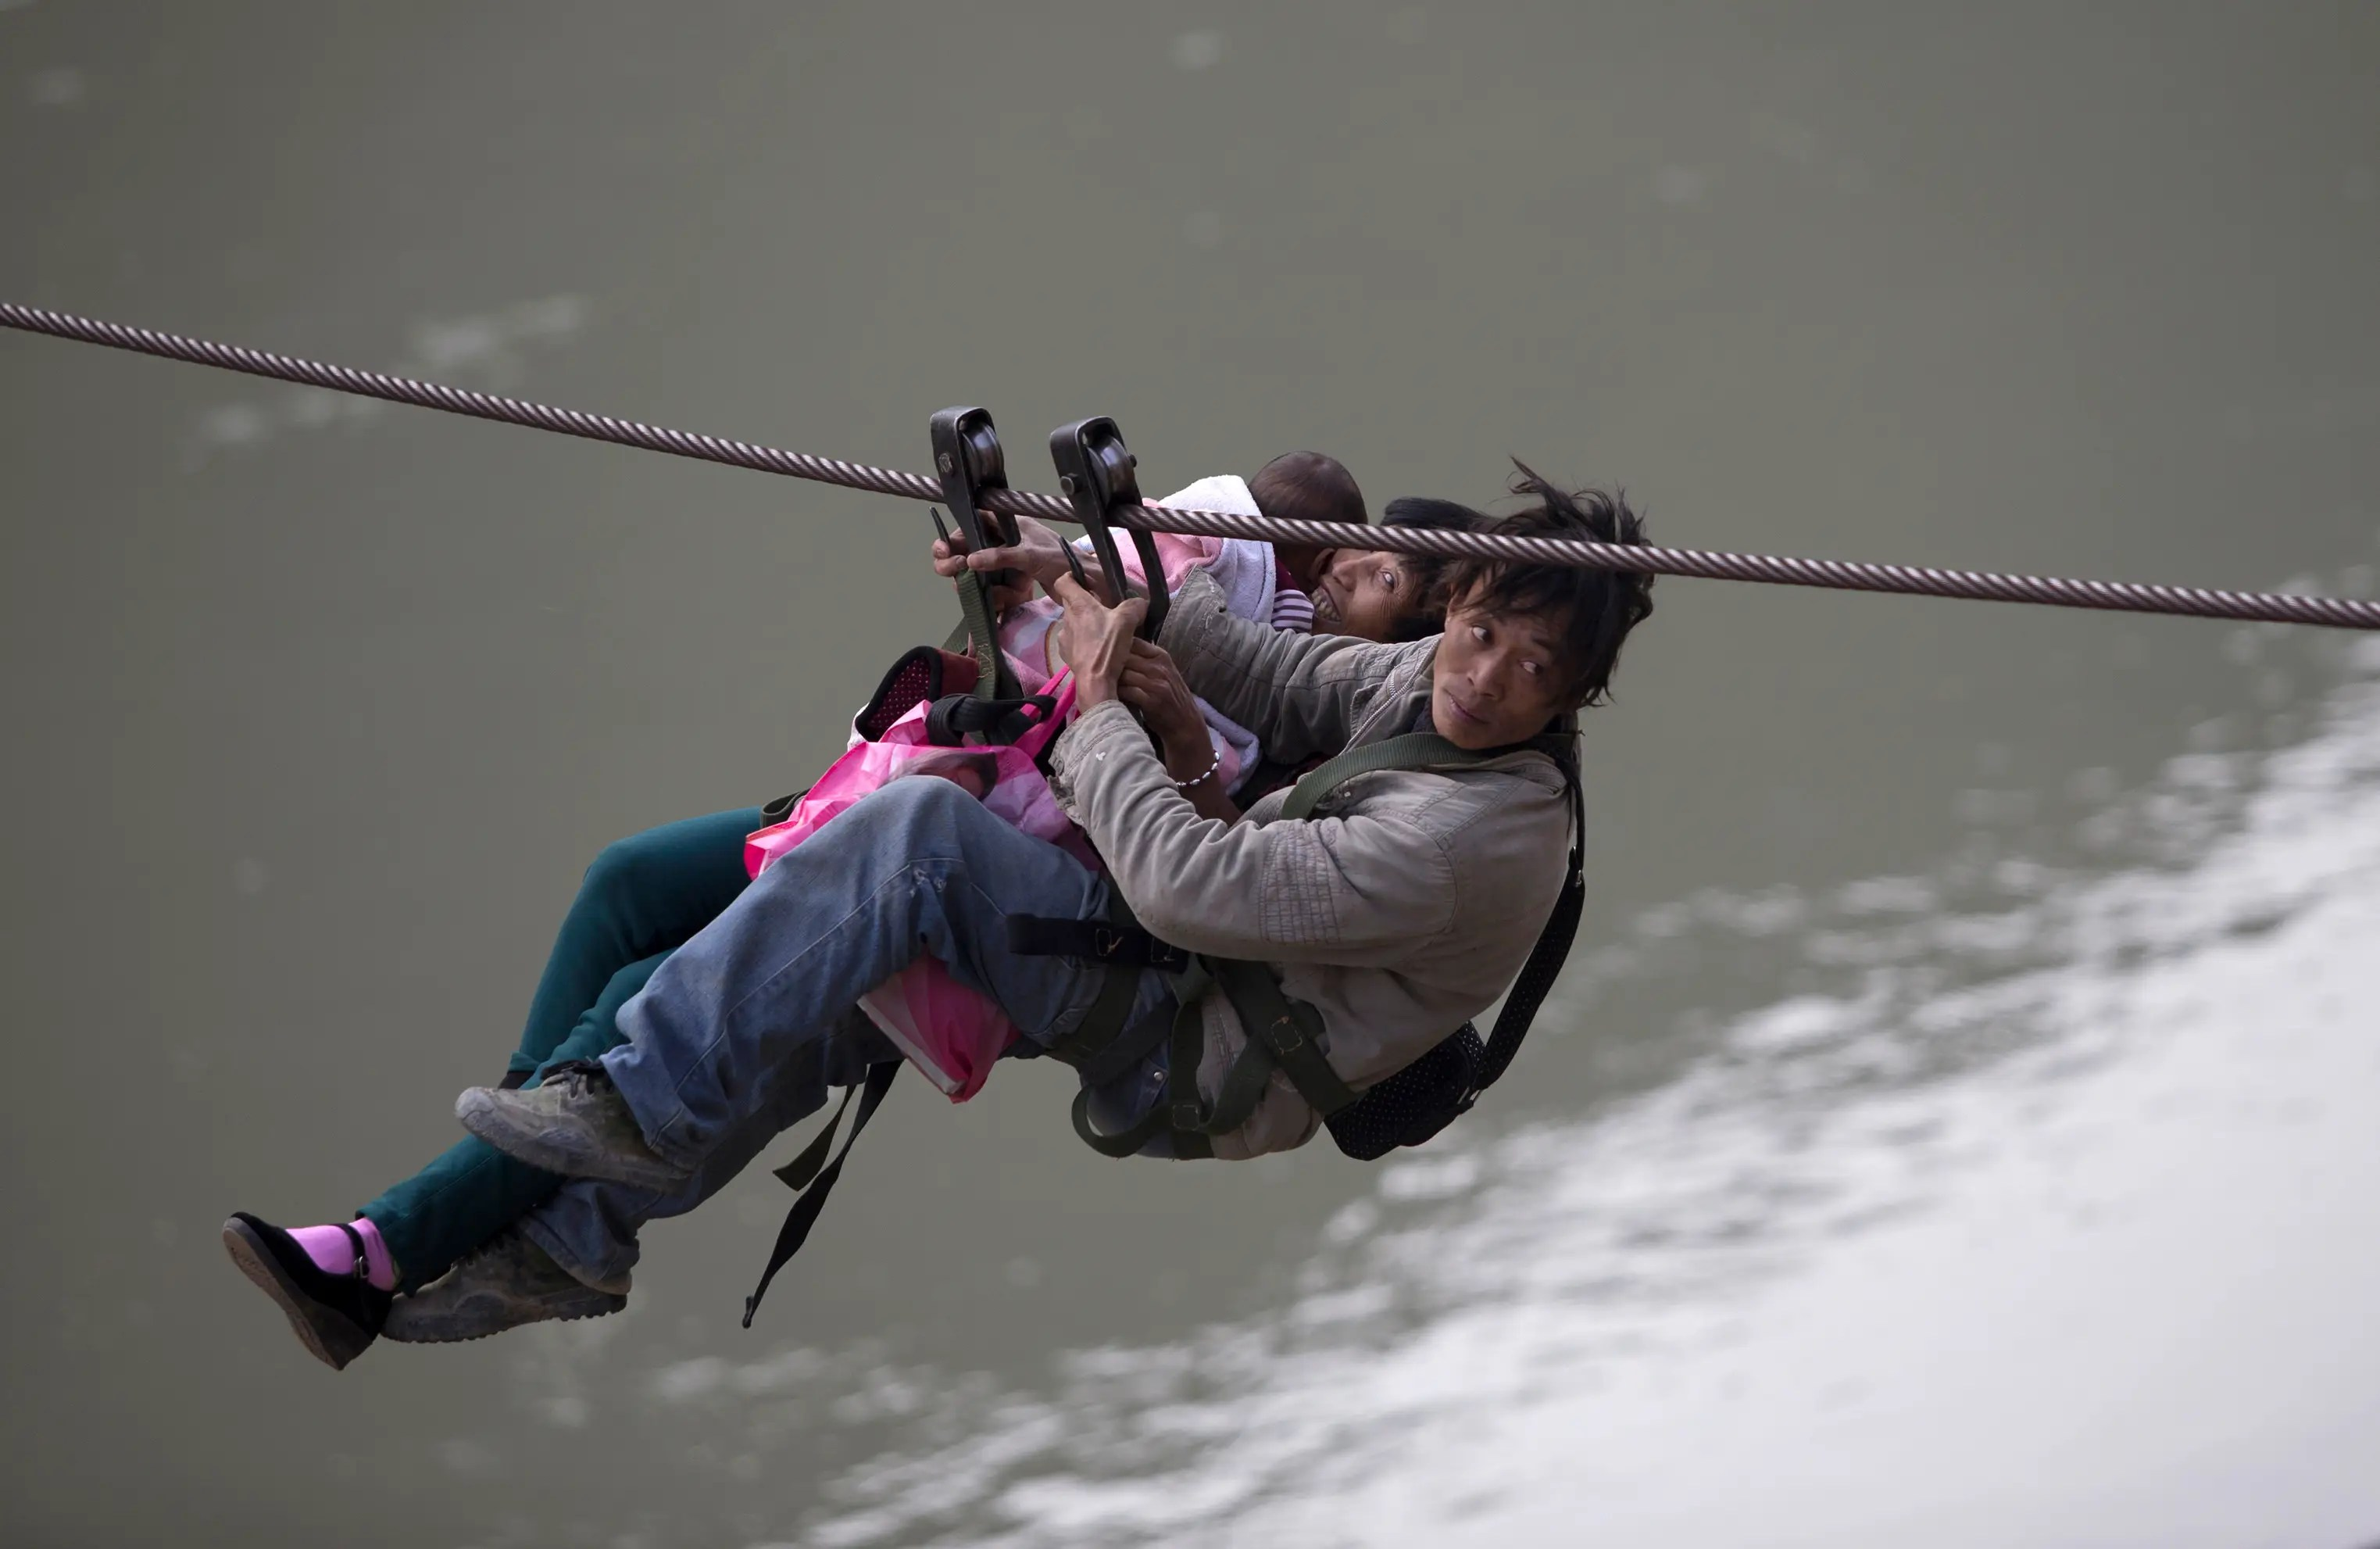 A man, his wife and their child use a zip-line to cross the Nujiang River in Lazimi village of Nujiang Lisu Autonomous Prefecture. Residents have been using the zip-line for years to cross the river as there is no bridge nearby, local media has reported.